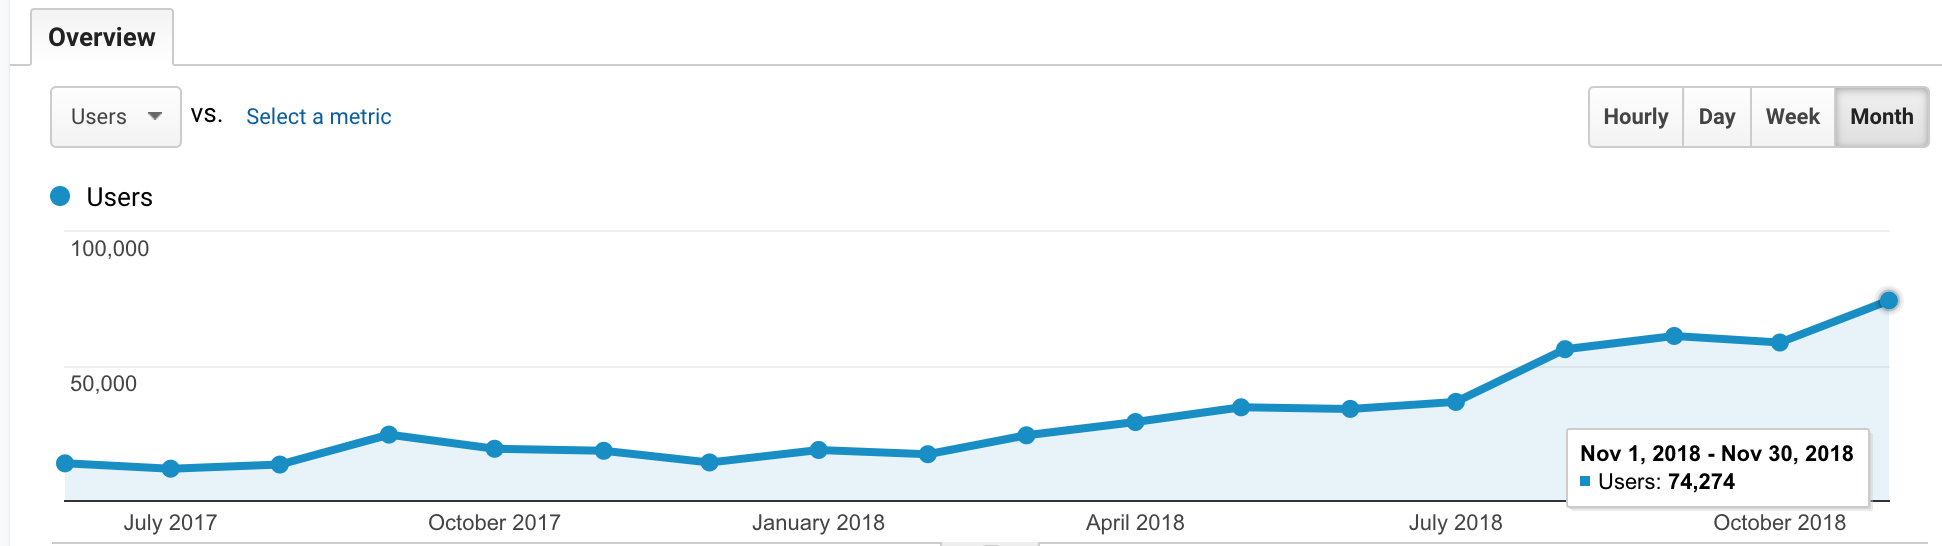 /how-we-grew-our-seo-to-70k-visitors-a-month-e6ea34ce1555 feature image